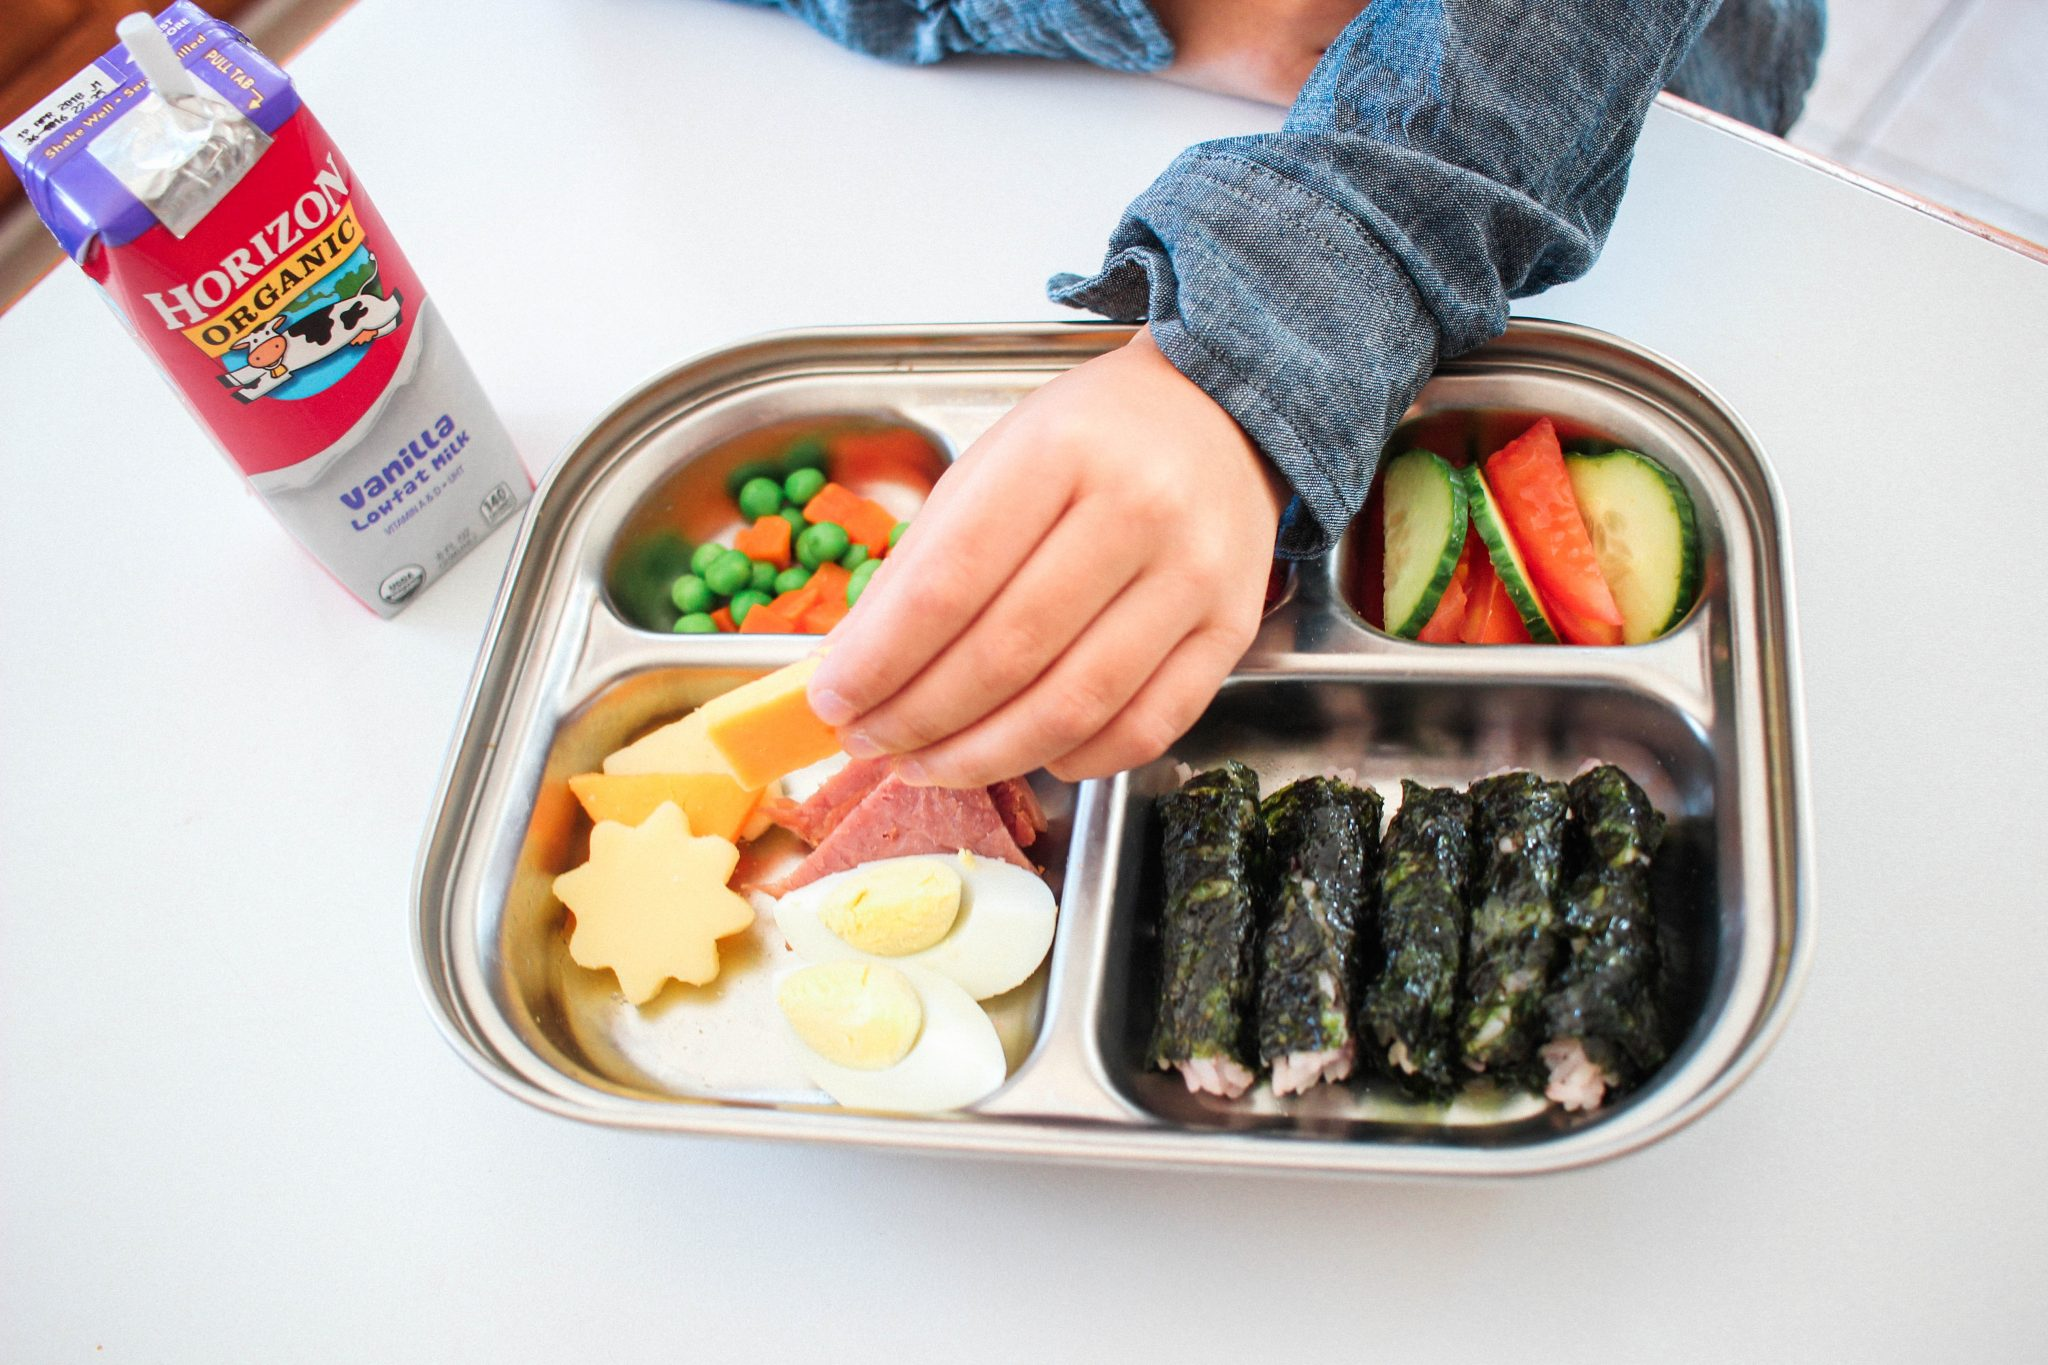 bento box meals easy simple school lunch ideas simply every. Black Bedroom Furniture Sets. Home Design Ideas